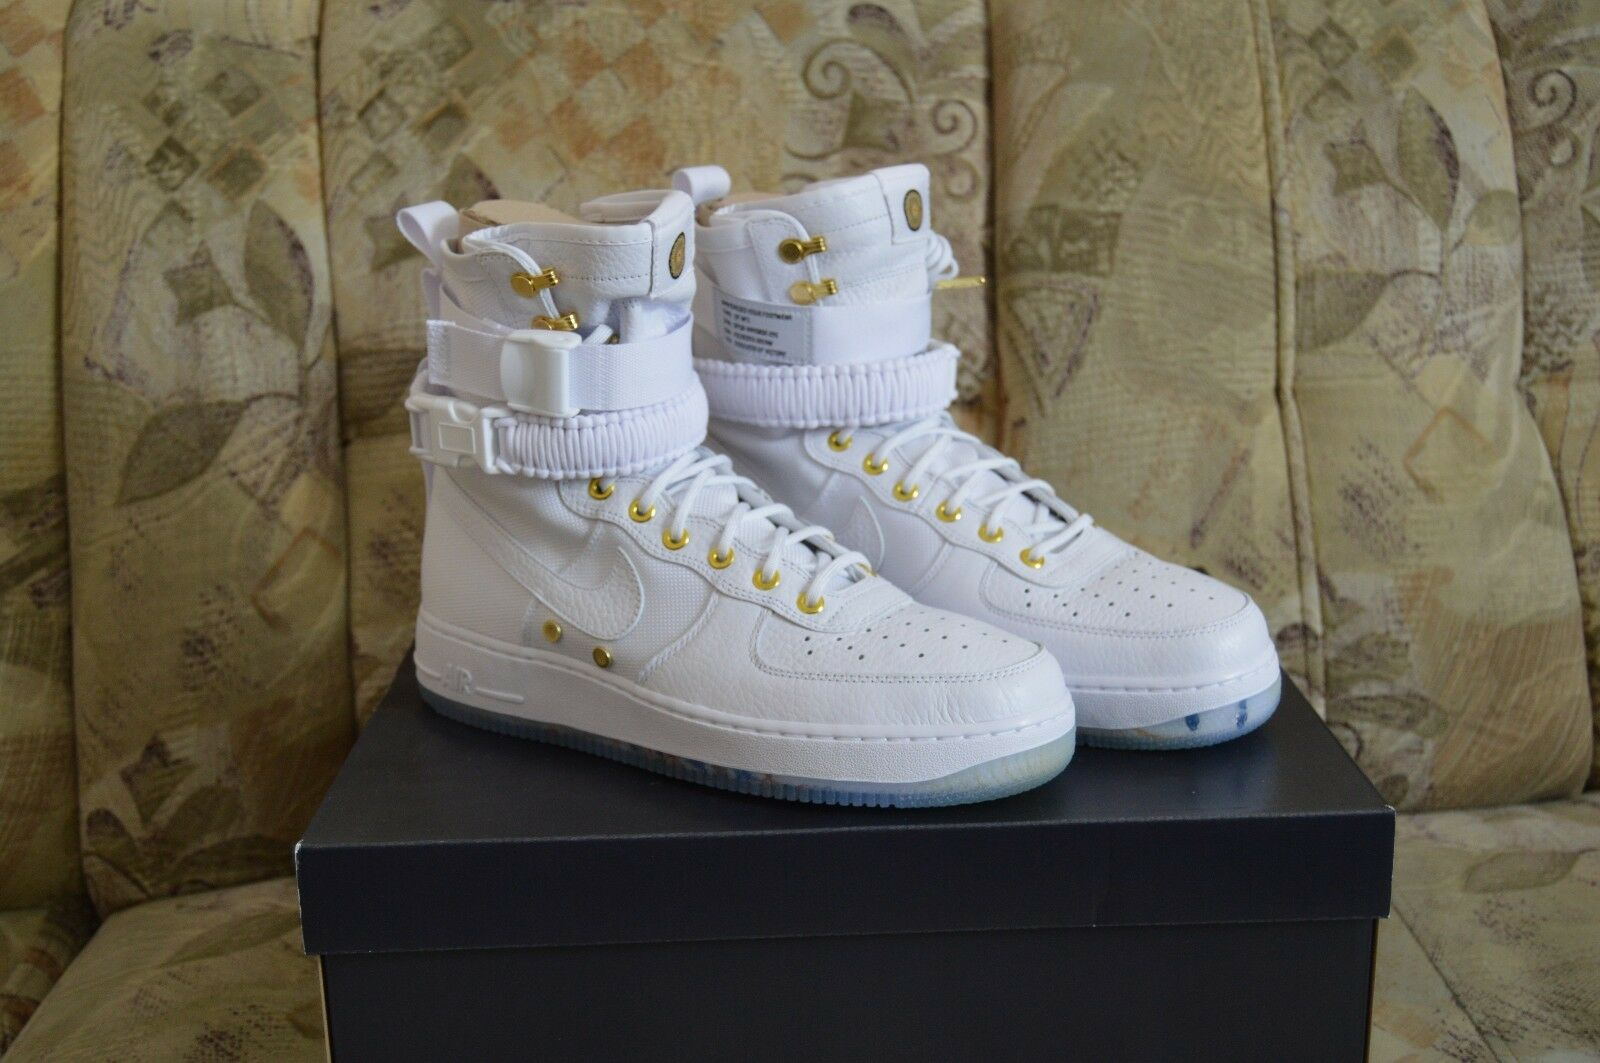 Nike - Special Force Nike Air Force 1 One - Lunar New Year - Size 10